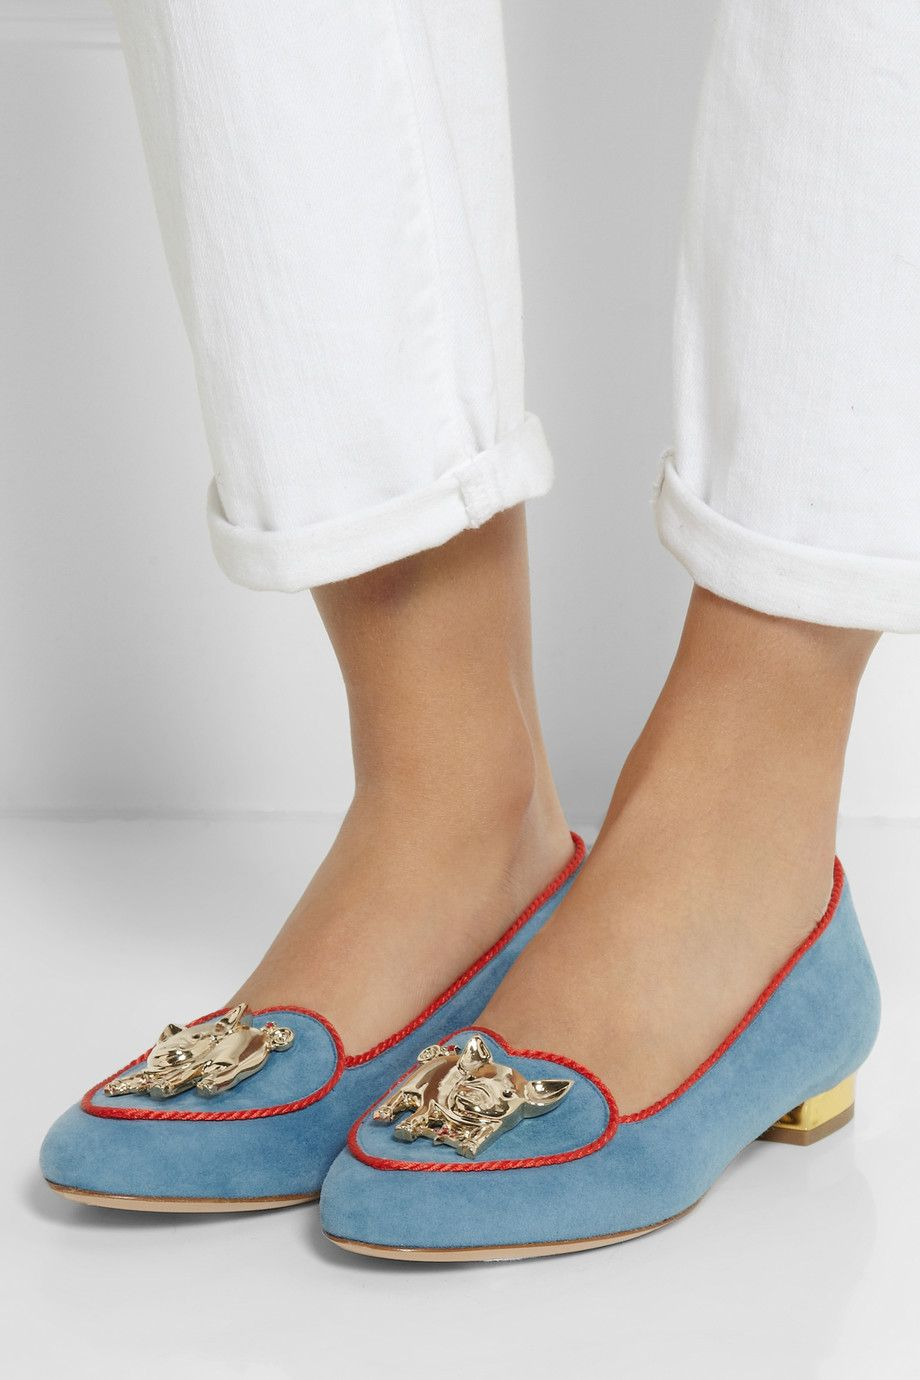 Charlotte Olympia | Year of the Pig suede slippers | NET-A-PORTER.COM